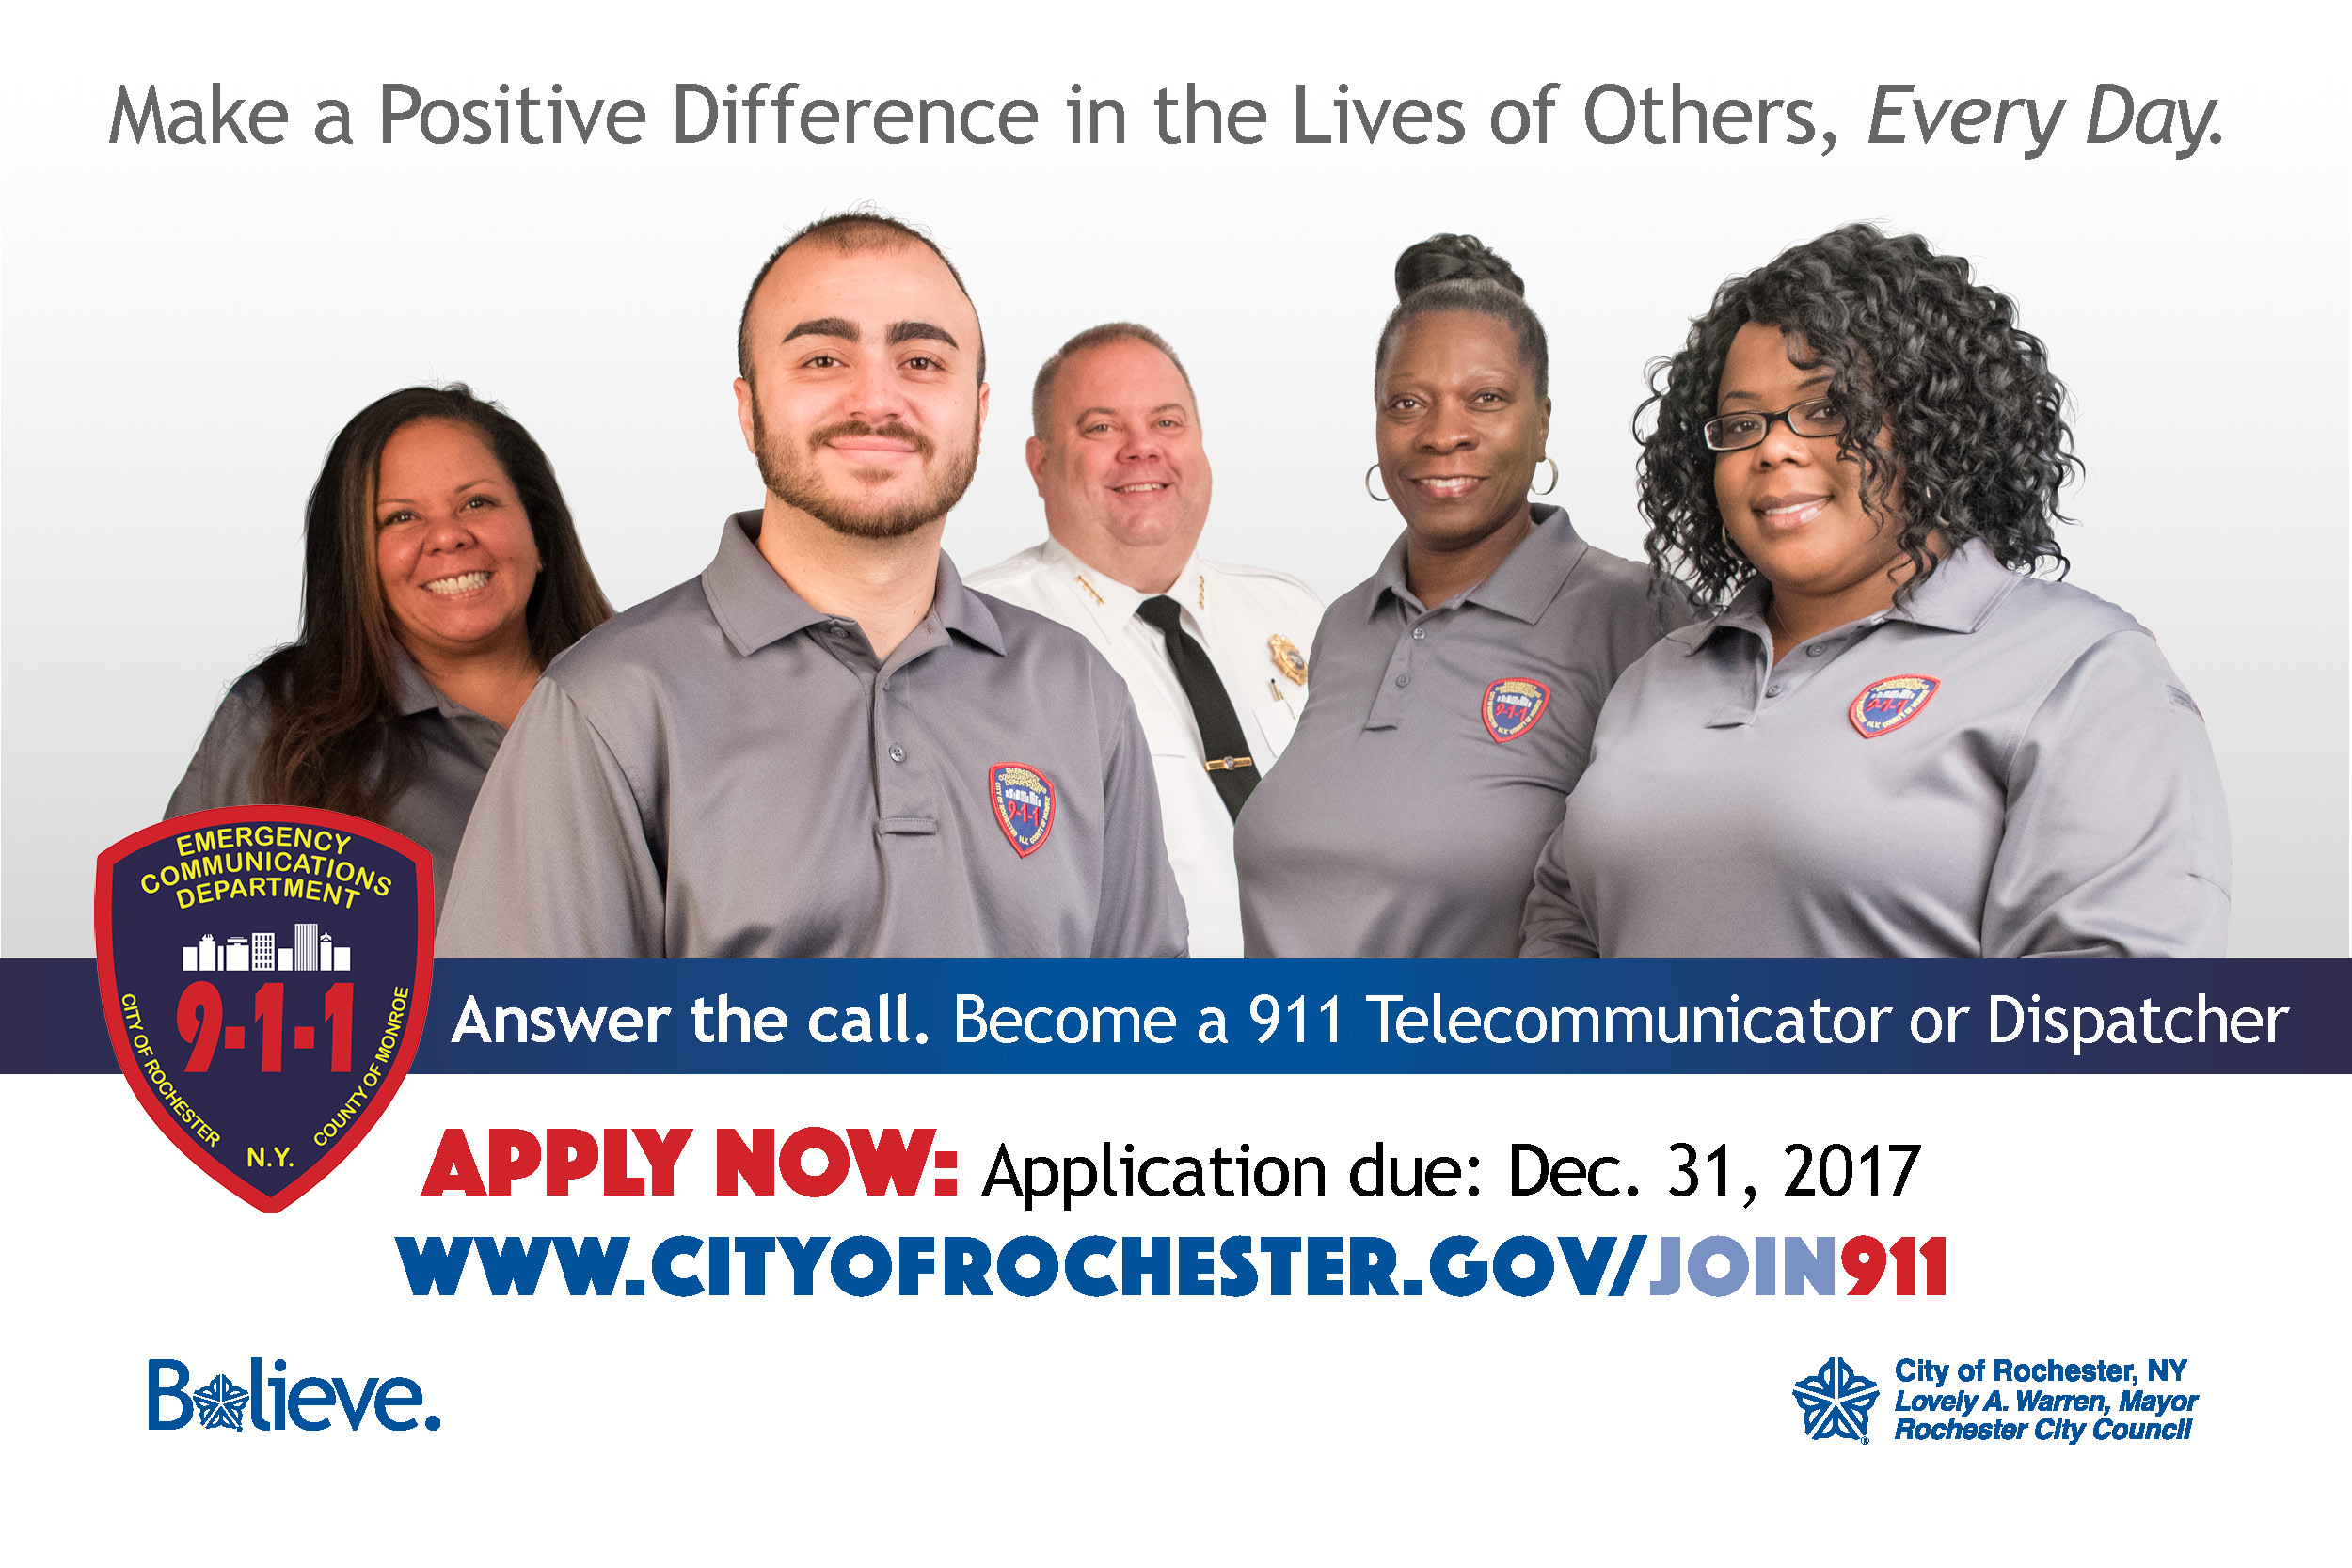 Join 911 Team